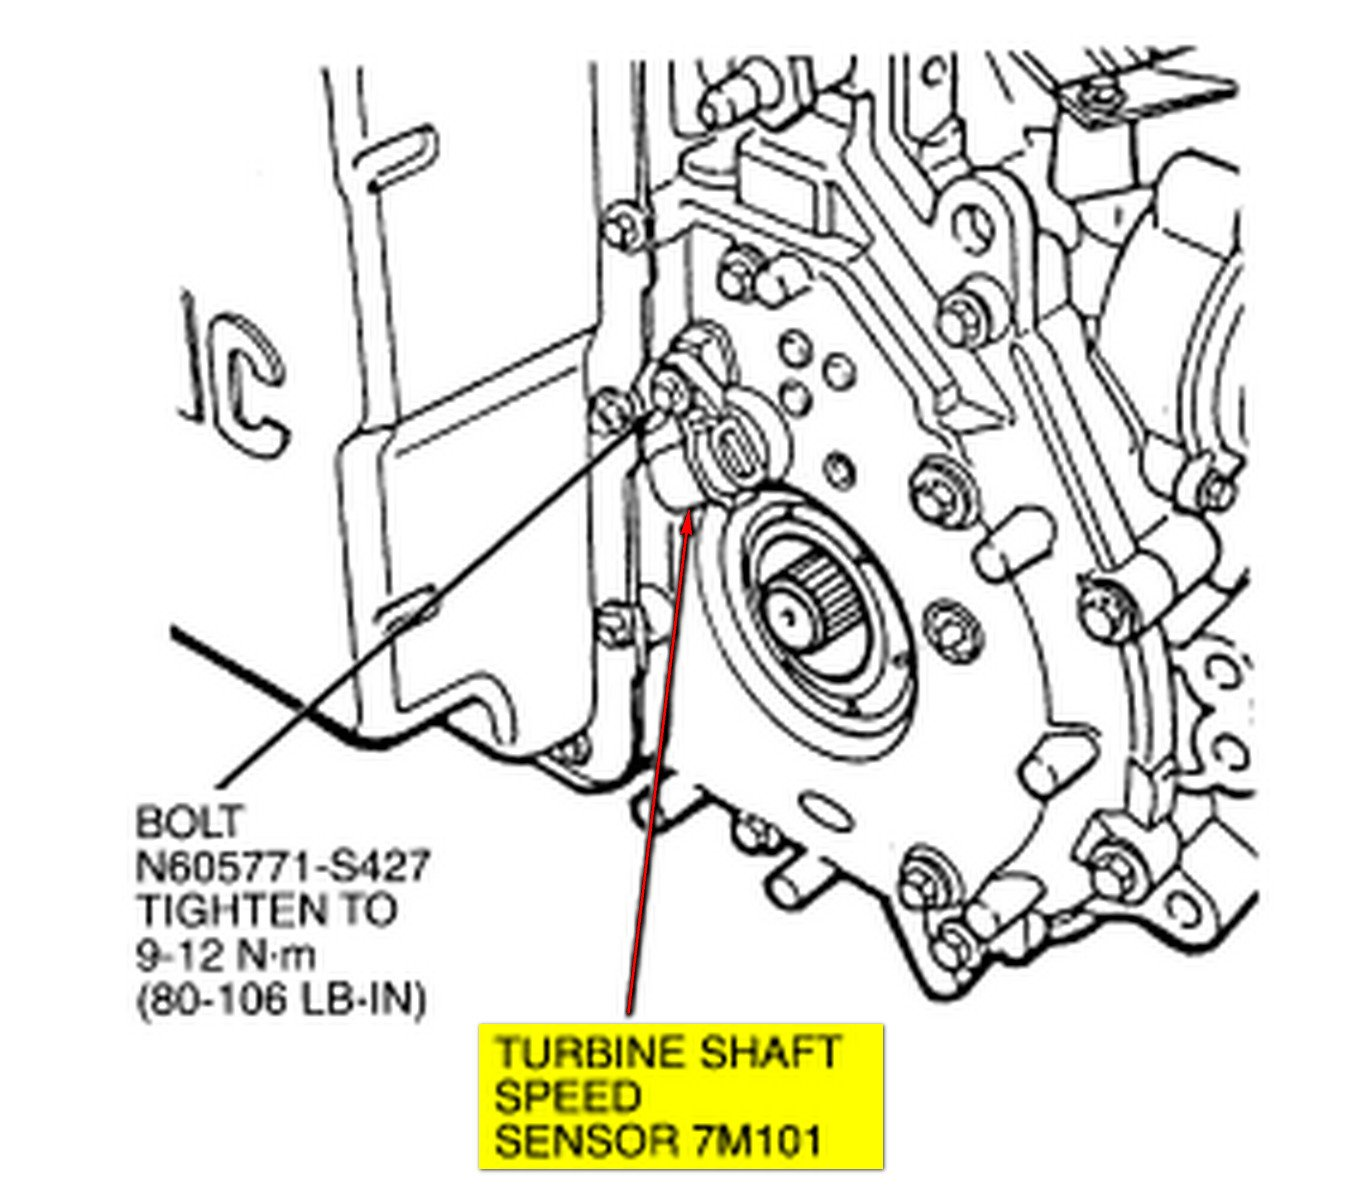 sbc tach wiring diagram html with Isuzu Speed Sensor Wiring Diagram on 72 Chevy 350 Distributor Wiring Diagram also Basic Wiring Derby Car besides Index3 together with Hei Wiring Harness also View Of Gm Hei Distributor Cap Wiring Harness.